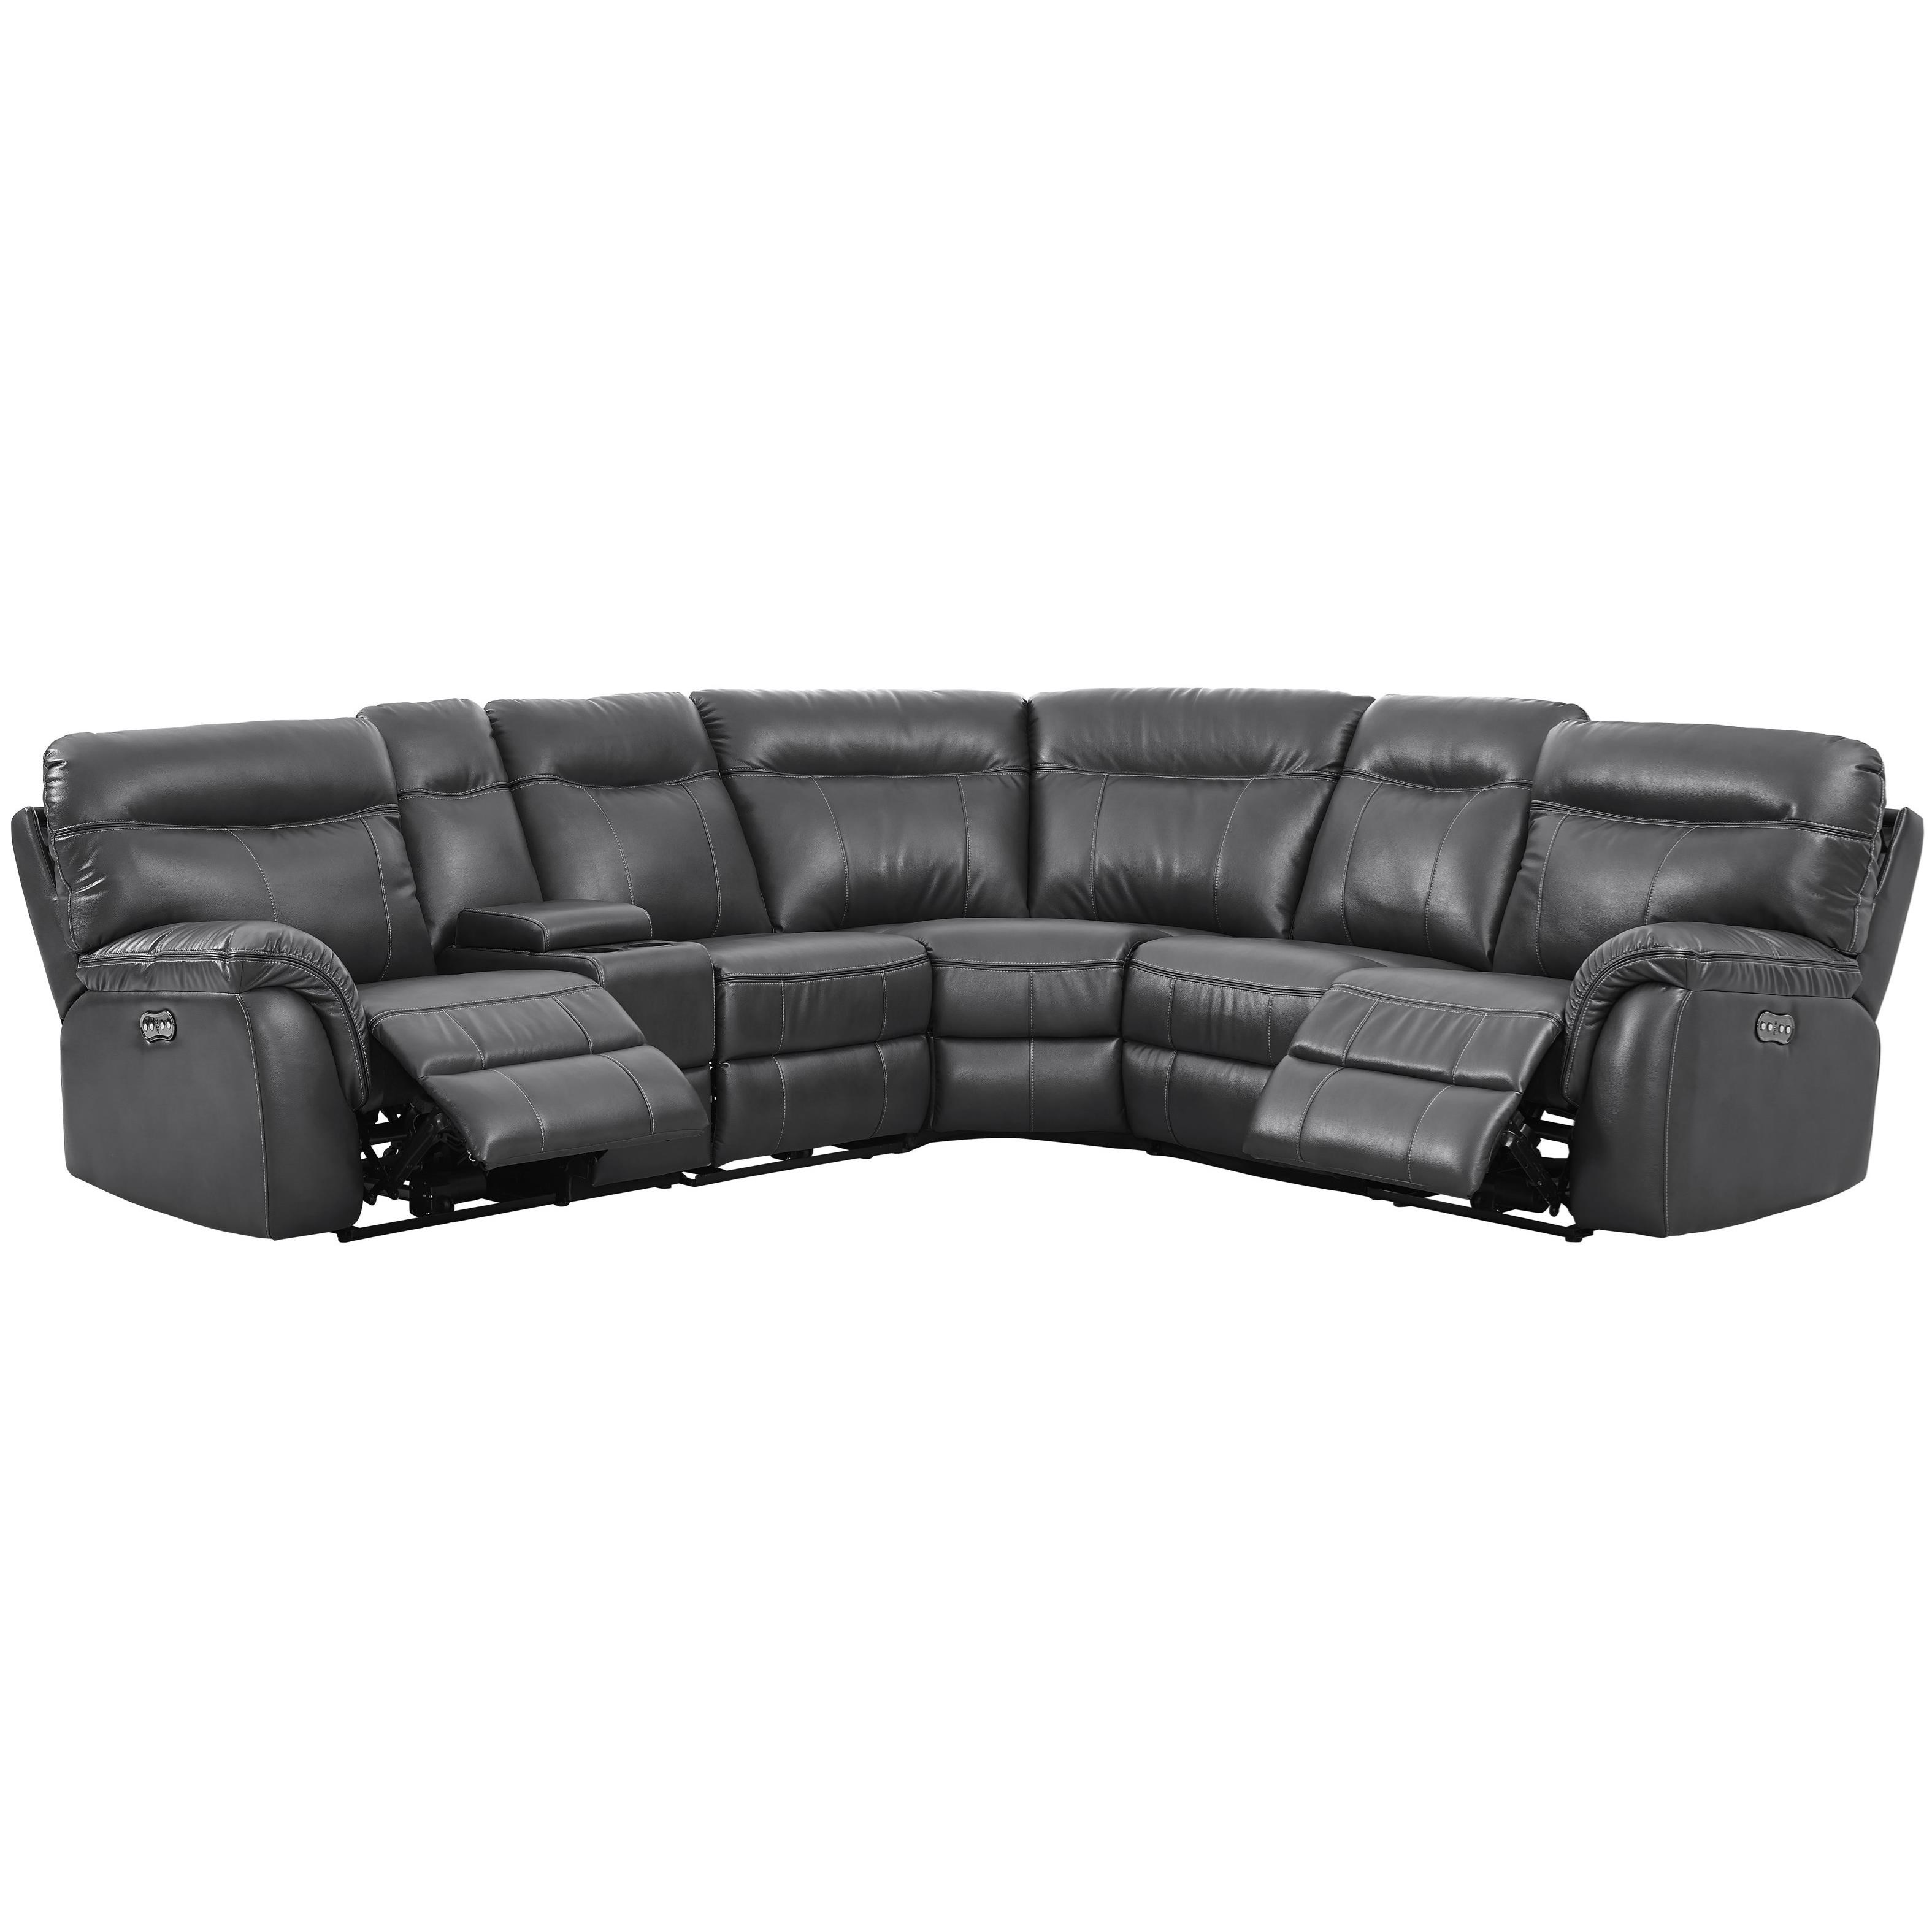 Atlas 5 Seat Power Sectional by New Classic at Beds N Stuff